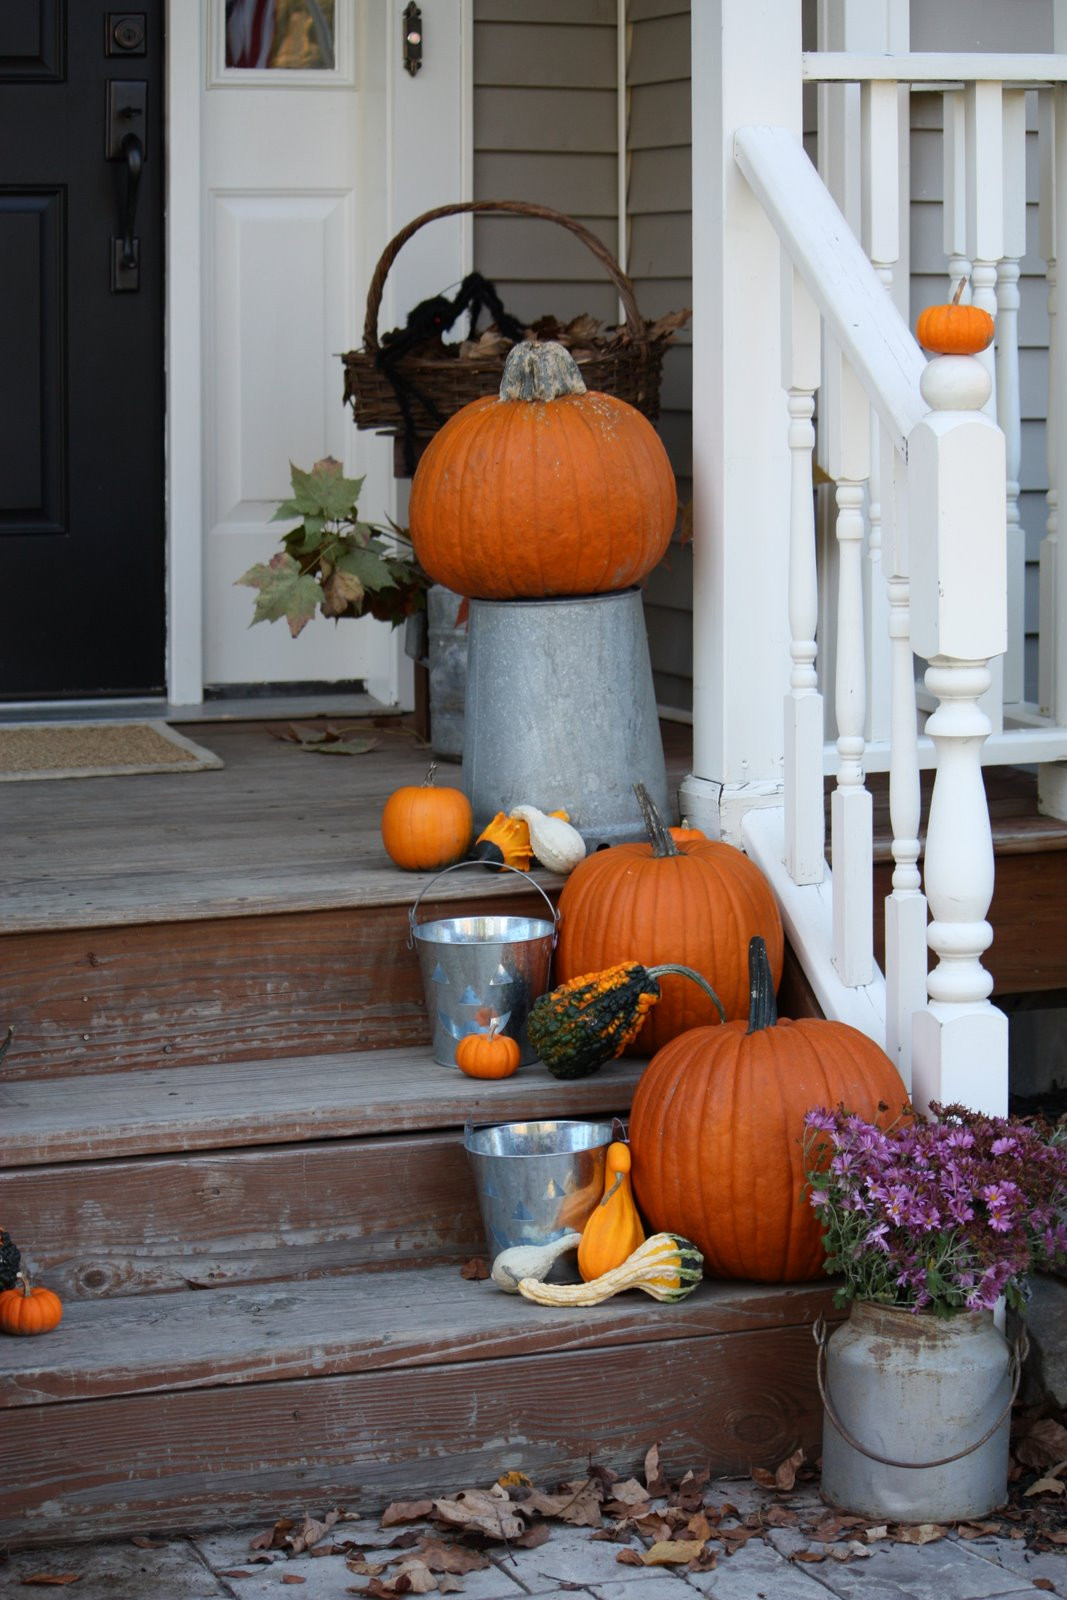 Outdoor Fall Decorations  5 Easy Fall Decorating Ideas for your Home